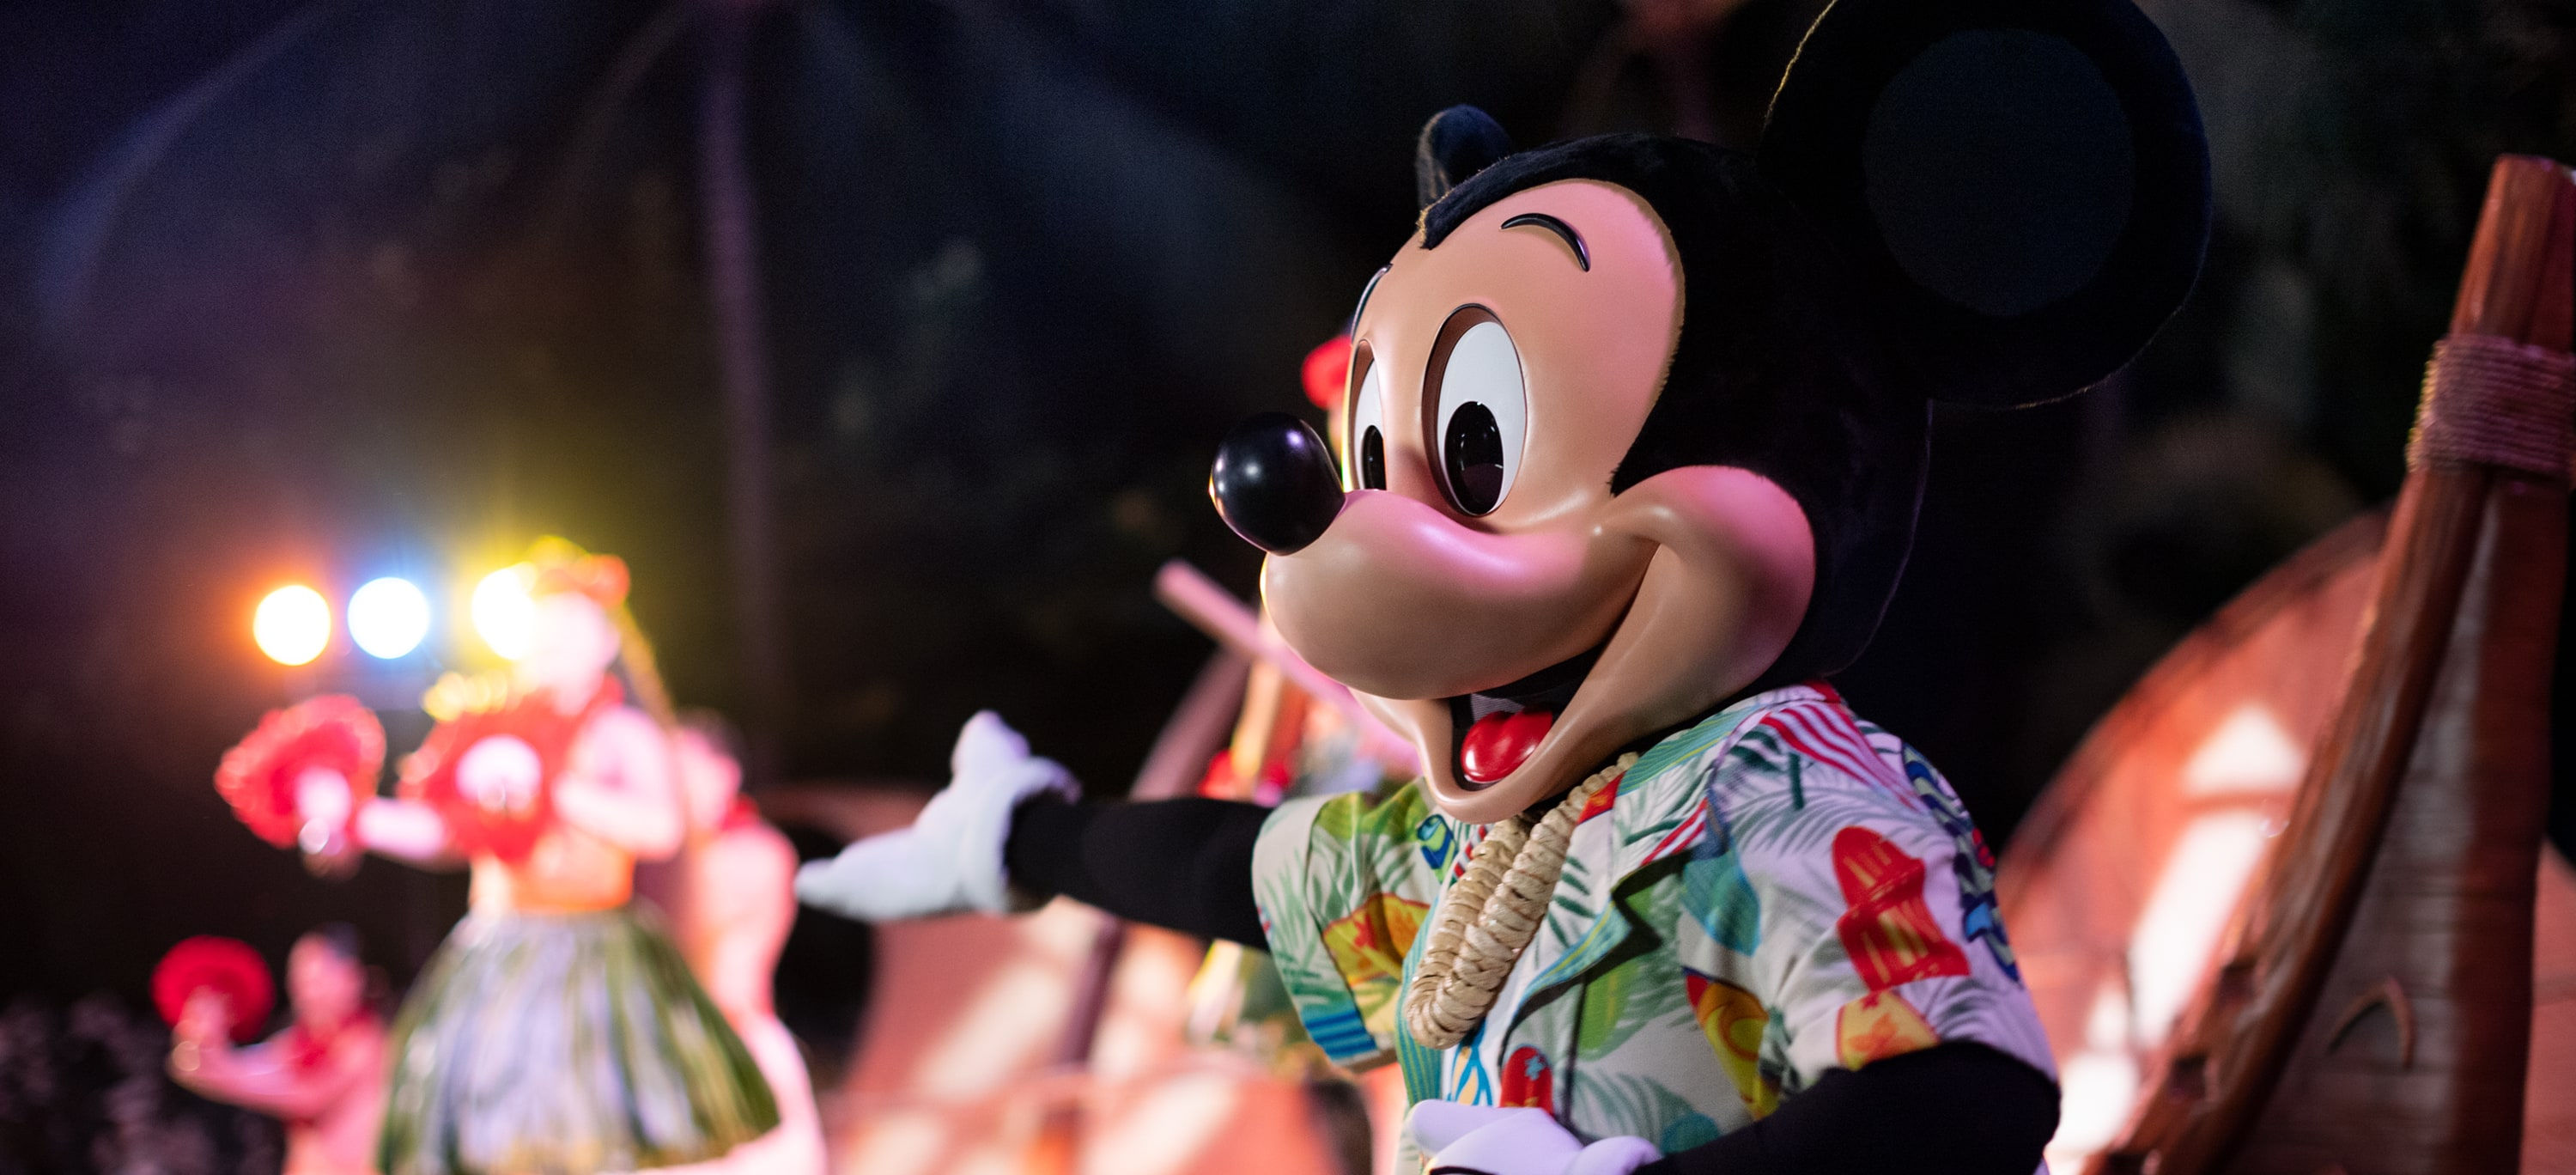 Mickey Mouse, wearing a Hawaiian shirt and a shell lei, joins performers on stage at night